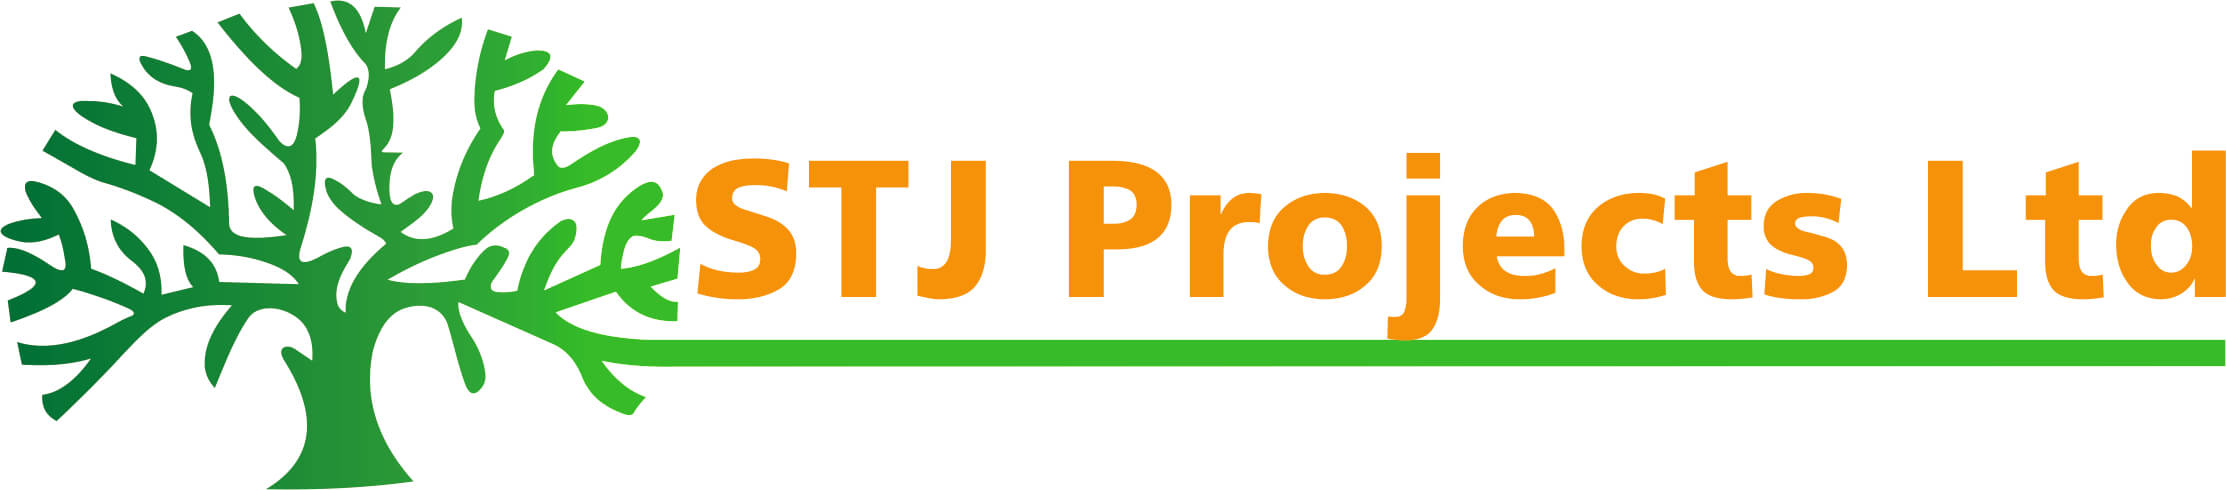 STJ Projects Limited Logo